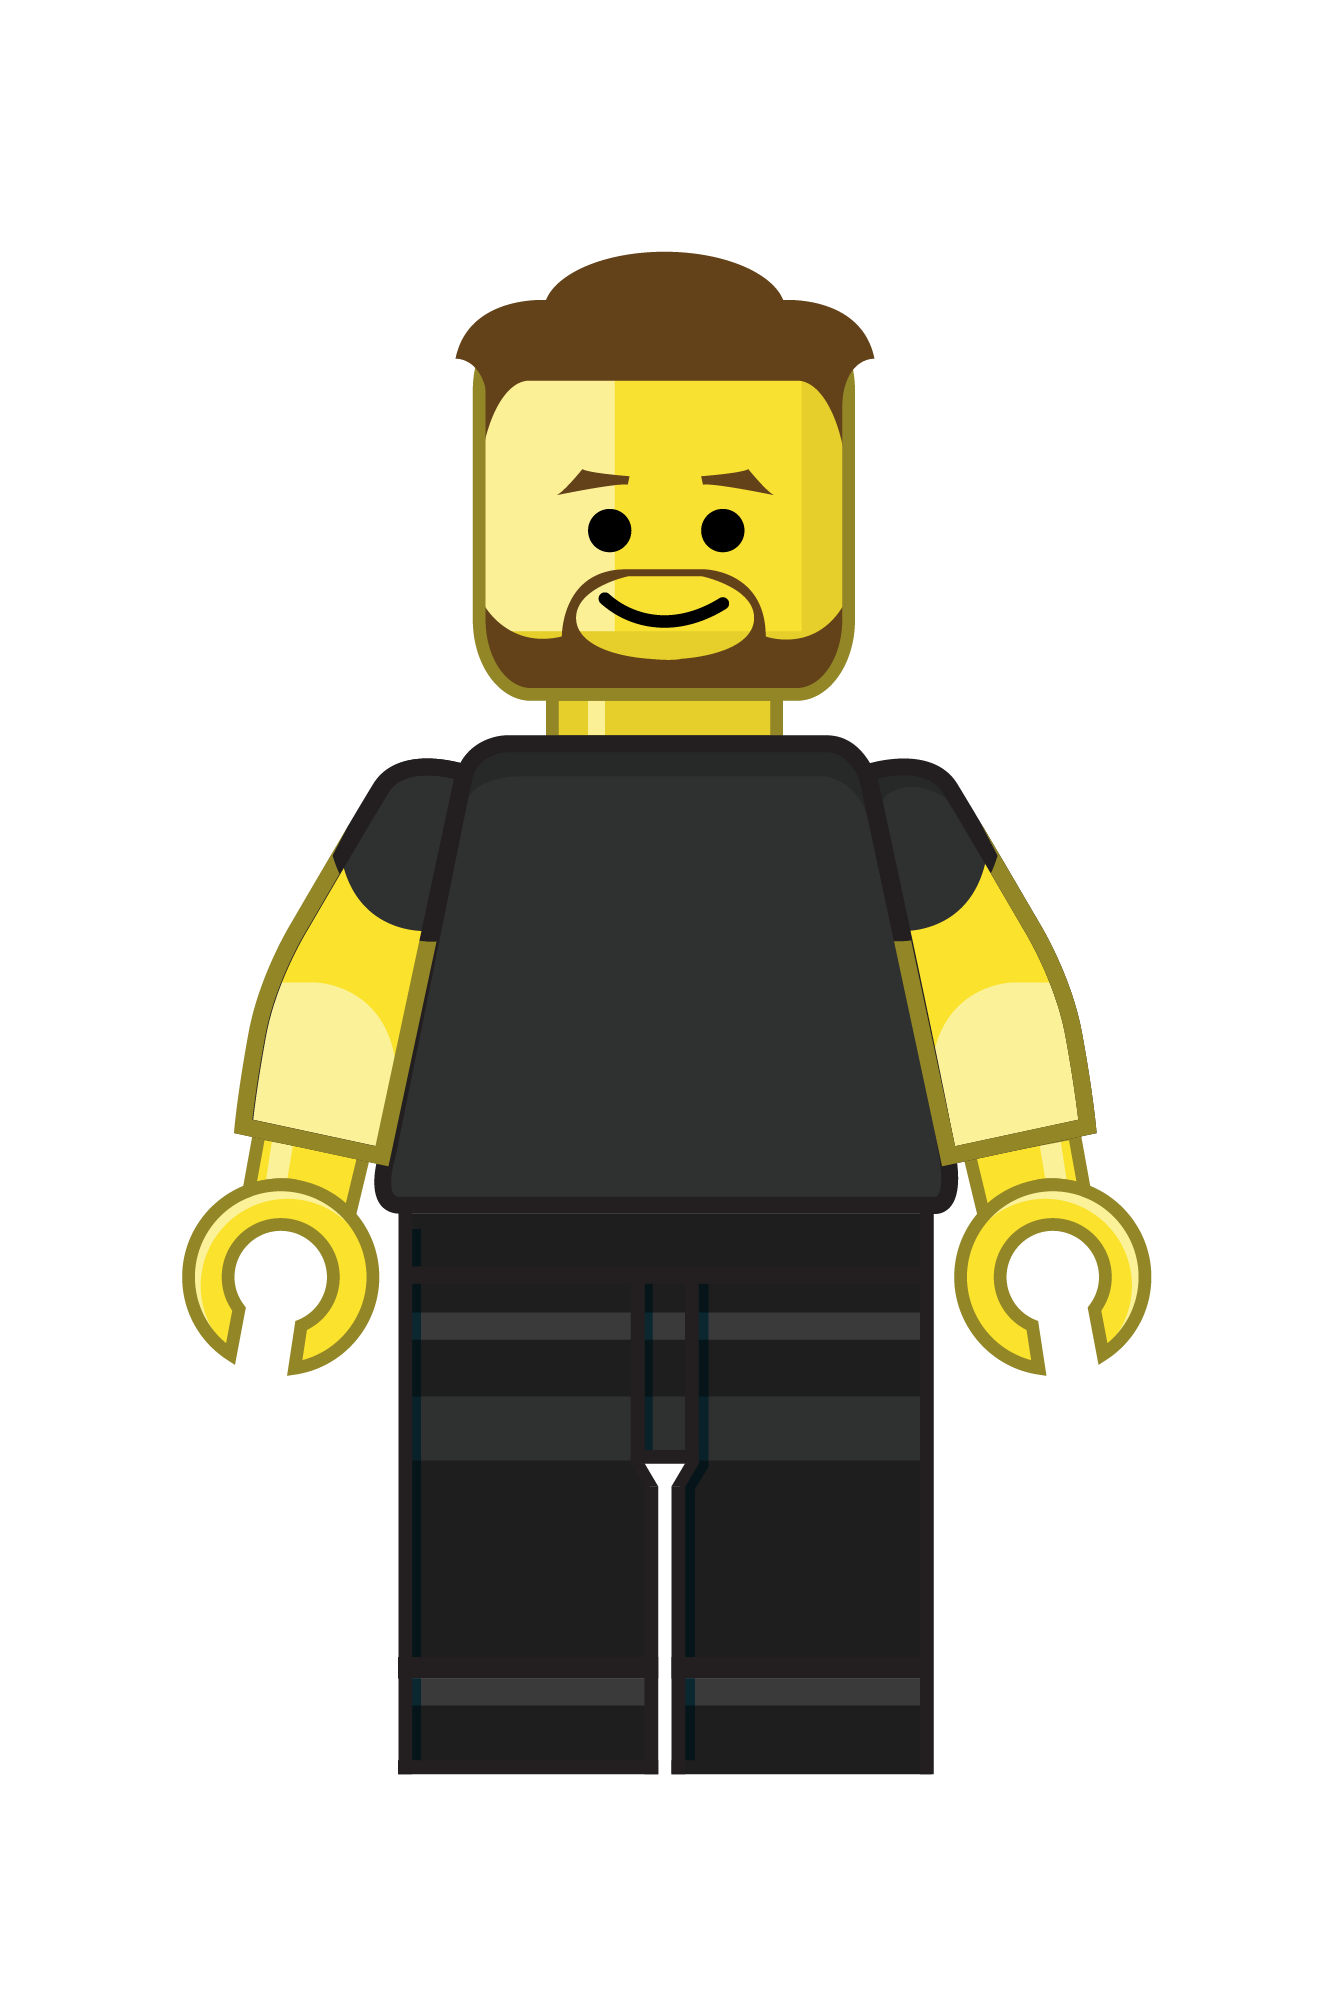 bITD_lego_BrotherElsey1.png